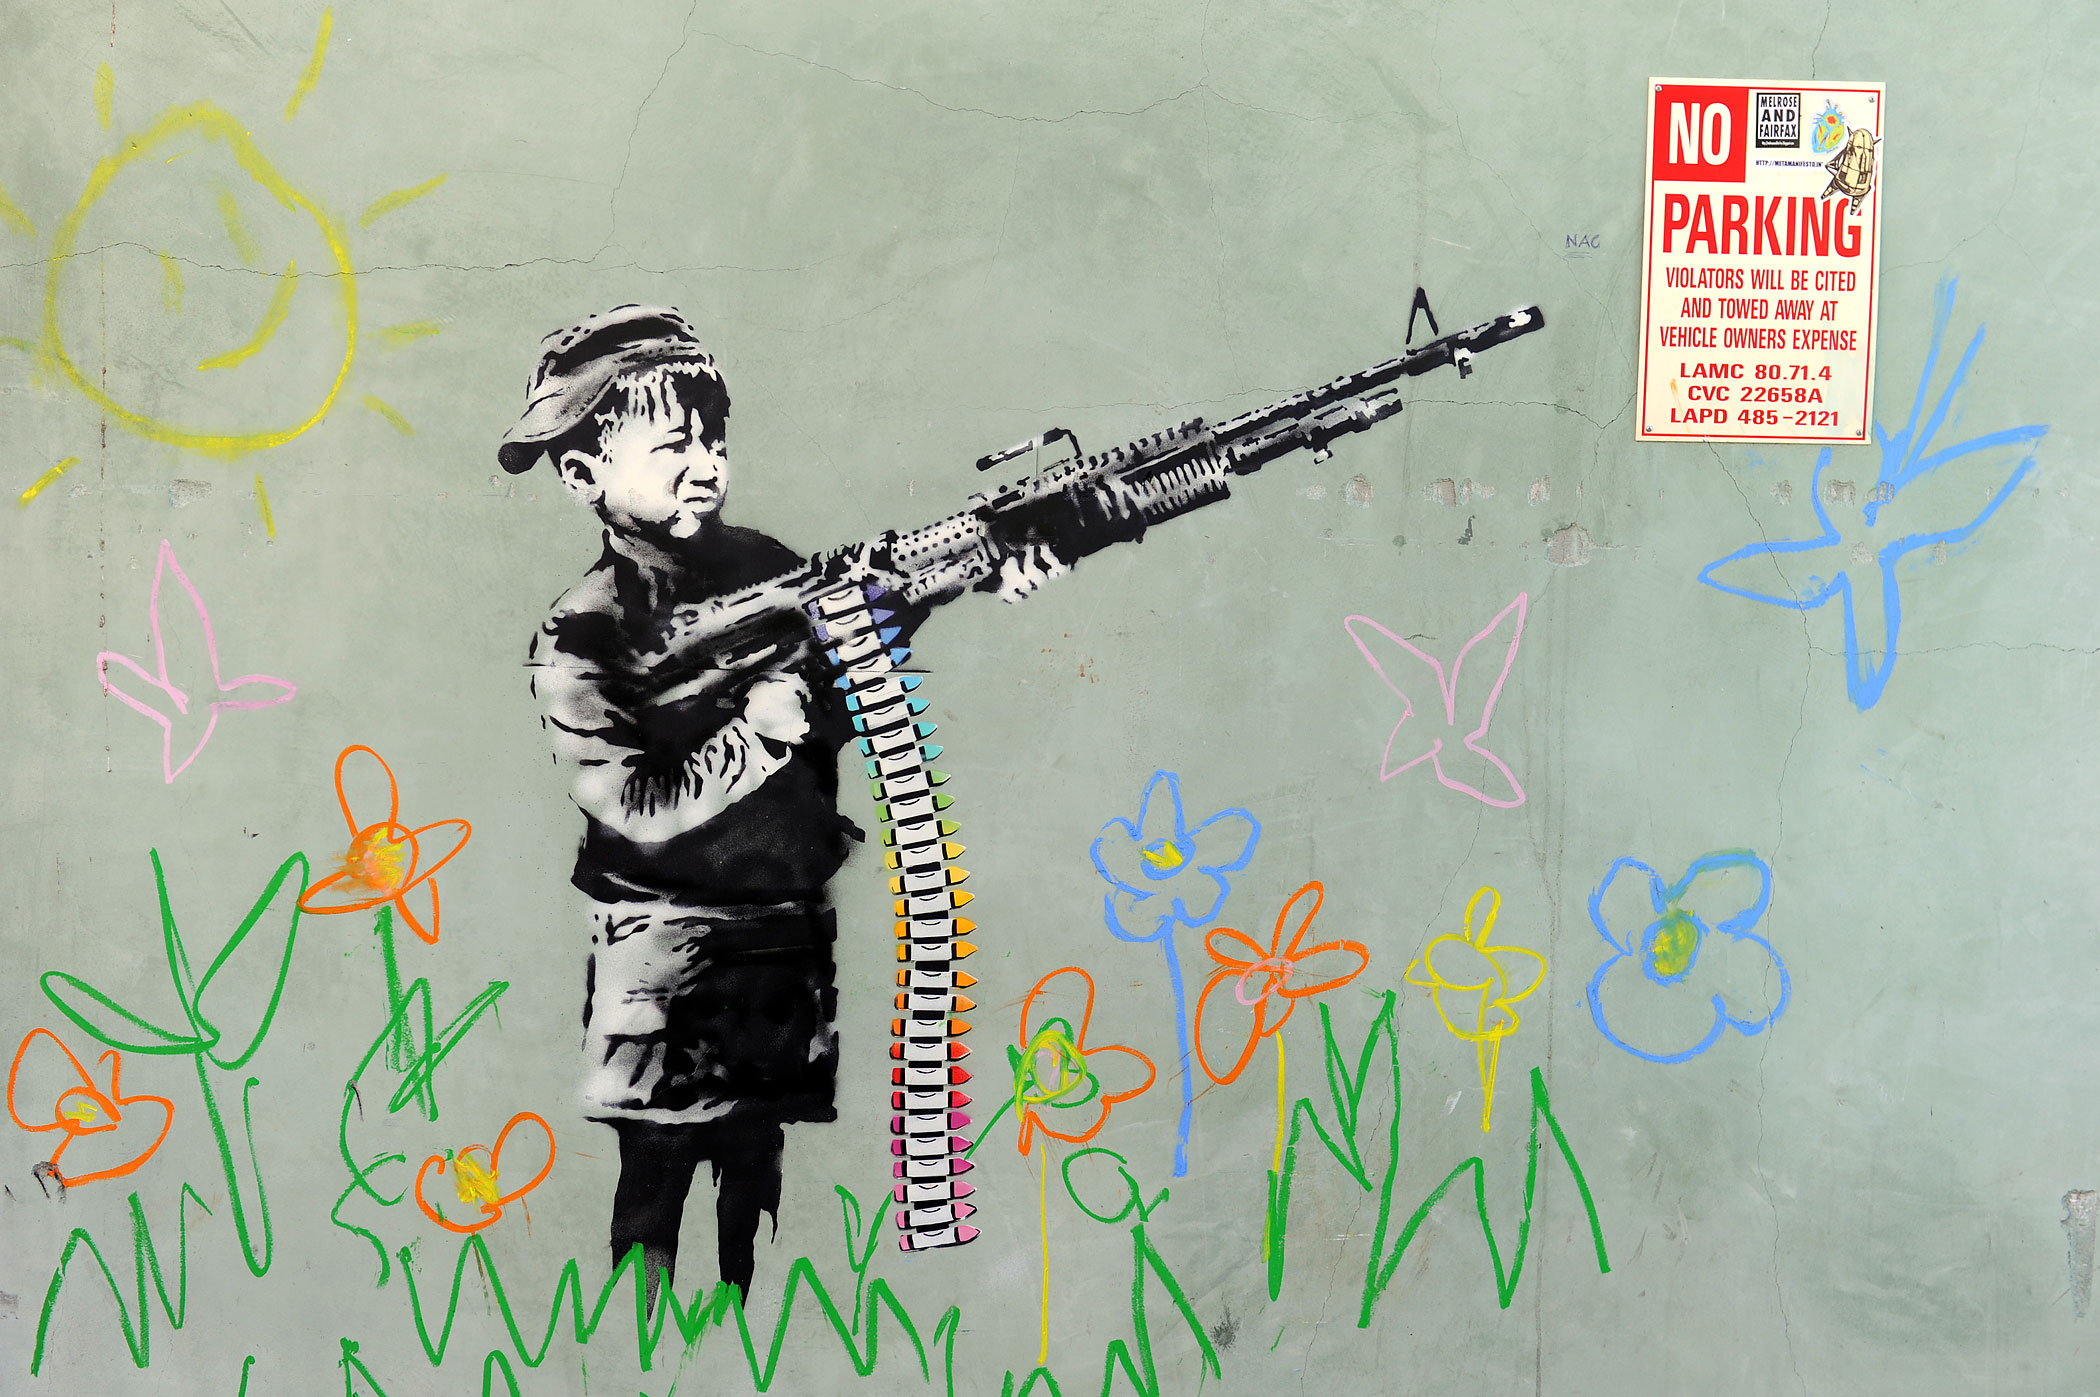 A Banksy depicting a child wielding a machine gun, in black and white surrounded by colored flowers, is spotted in Westwood, Ca. on February 17, 2011.